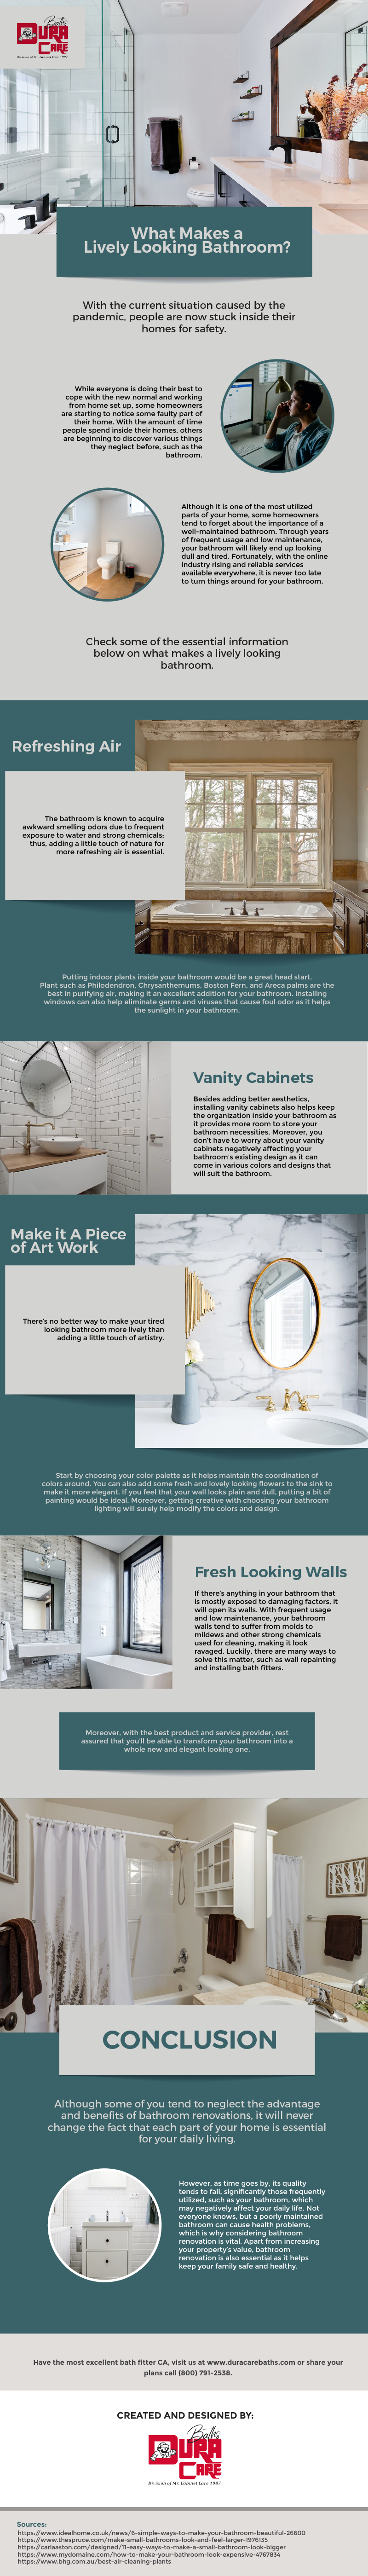 What Makes A Lively Looking Bathroom? - Infographic